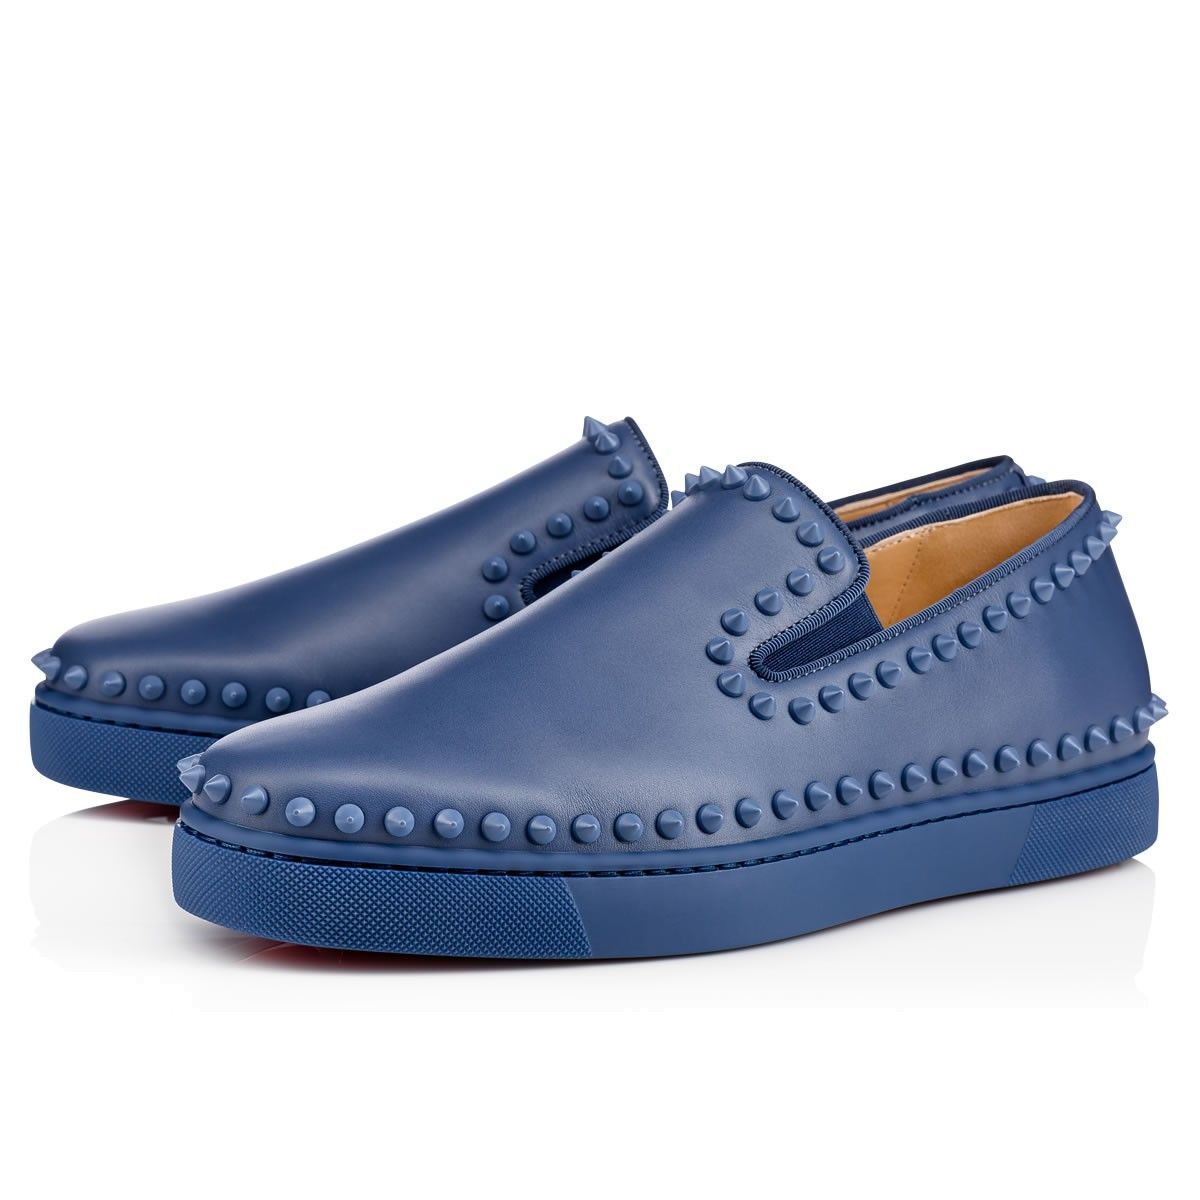 Casanono Flat studded loafers Christian Louboutin Free Shipping Sale Online Store Online Discount Official Affordable For Sale UbTSJ5qO